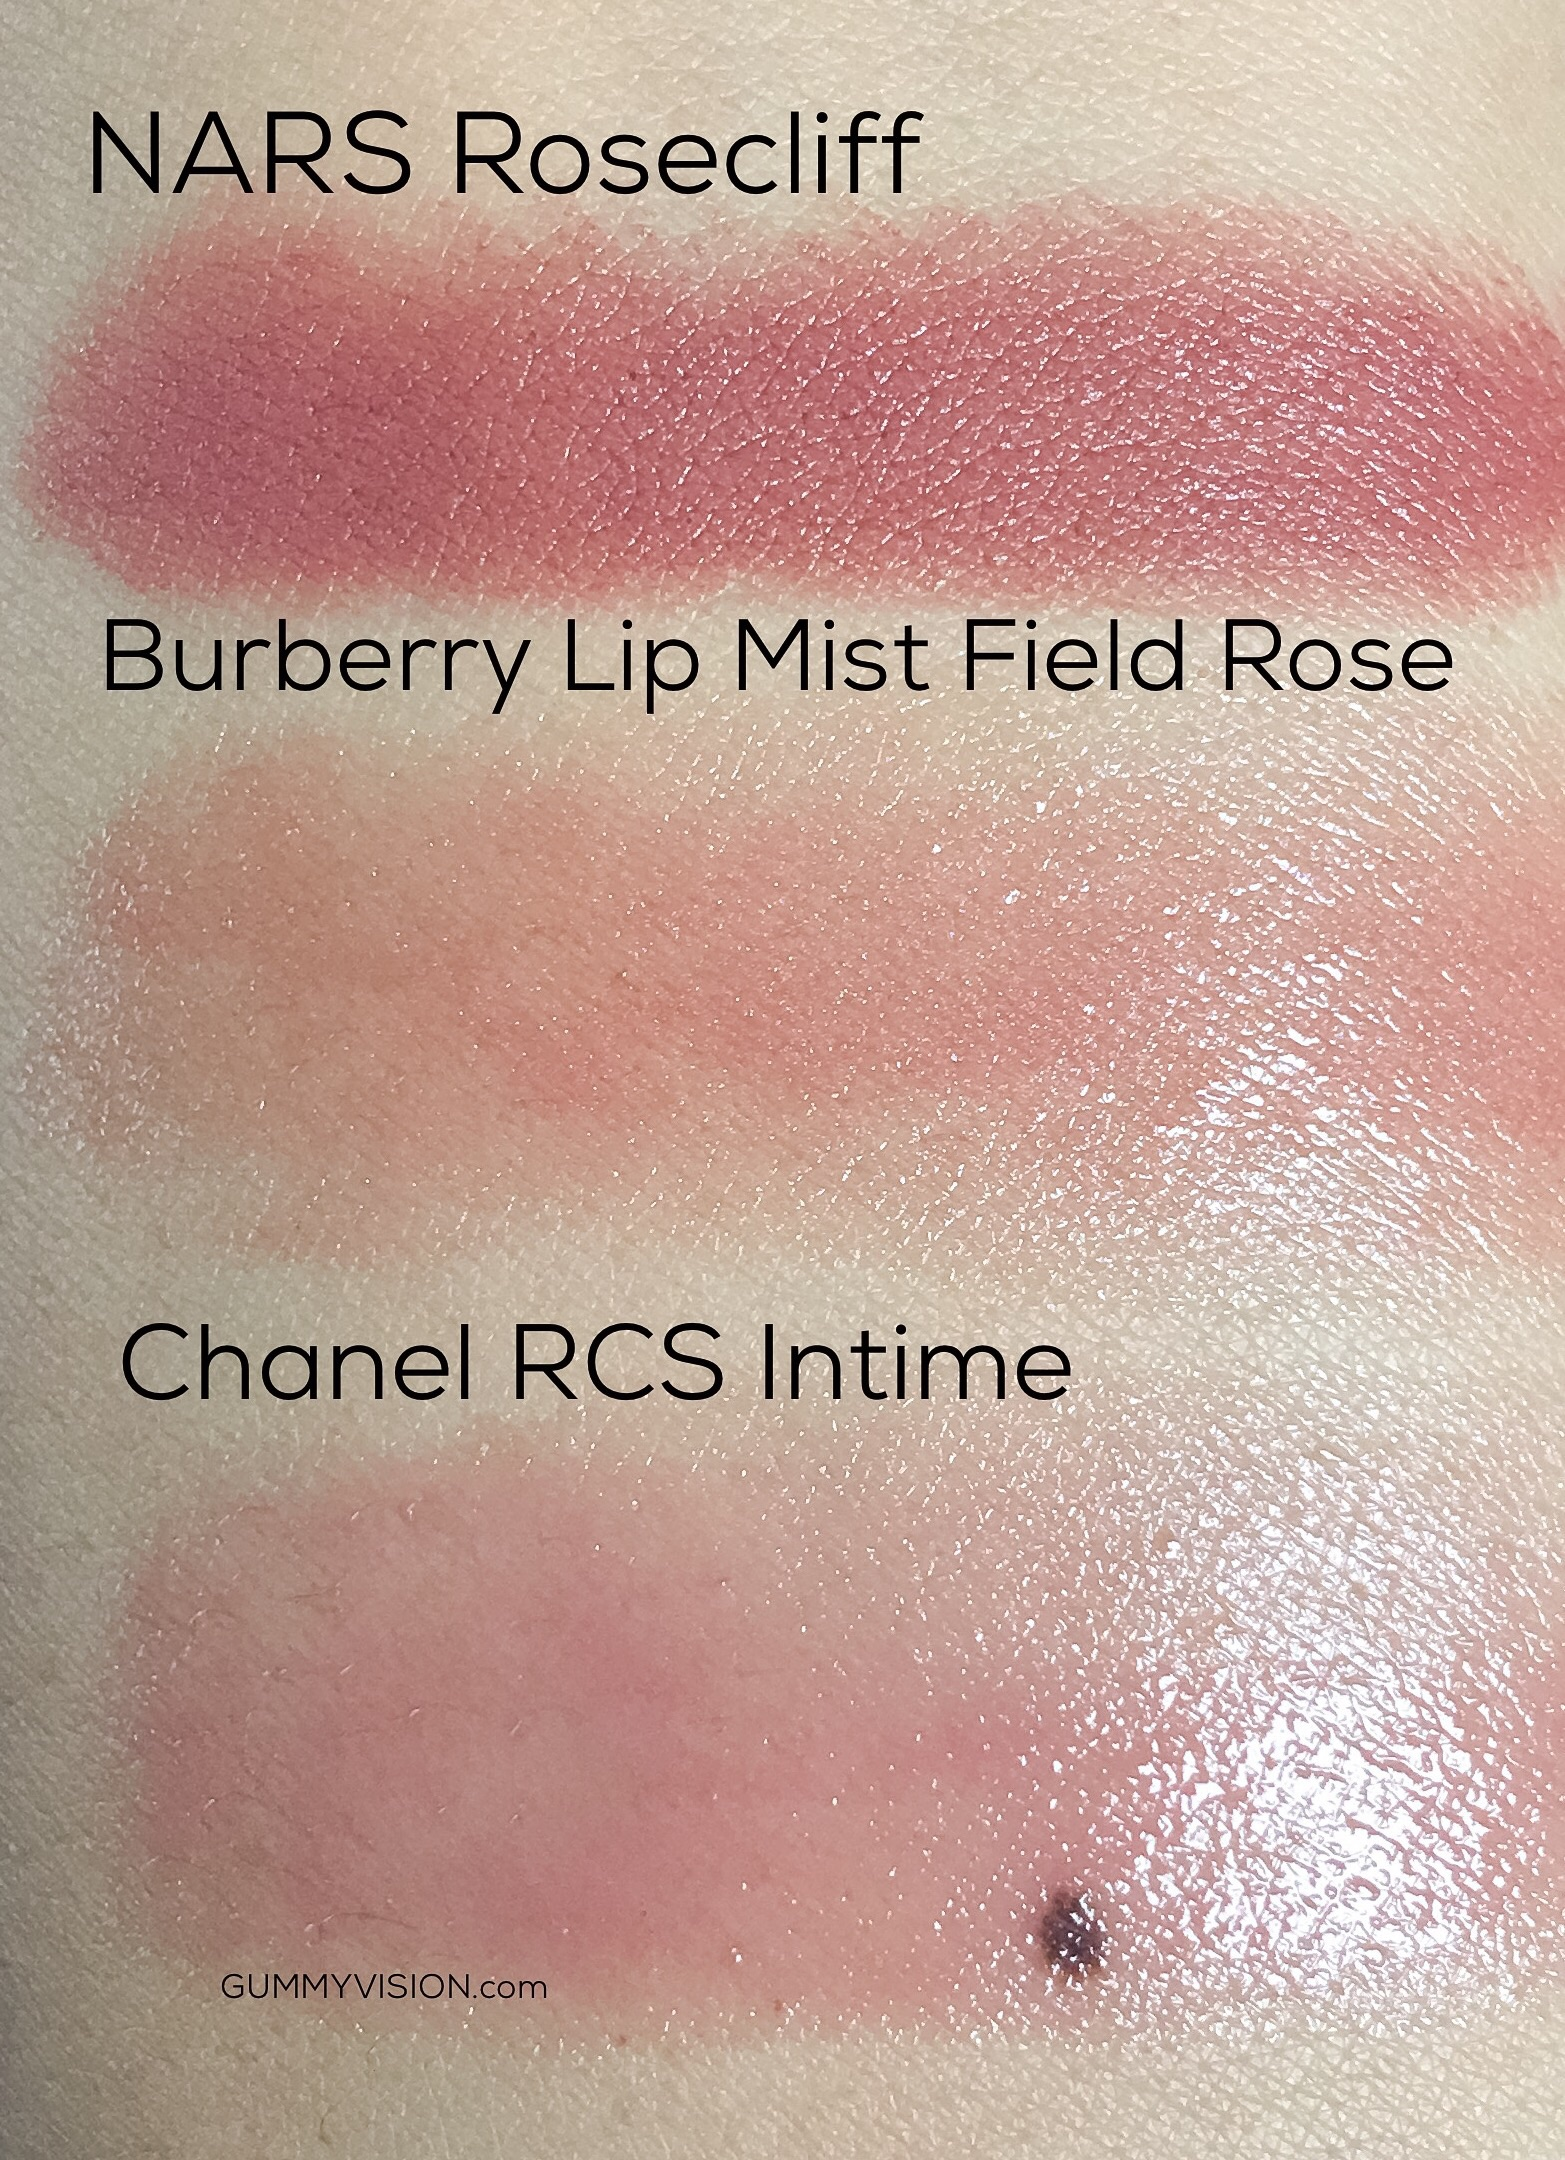 Neutral Lips - NARS Rosecliff, Burberry Lip Mist in Field Rose, Chanel Rouge Coco Shine in Intime